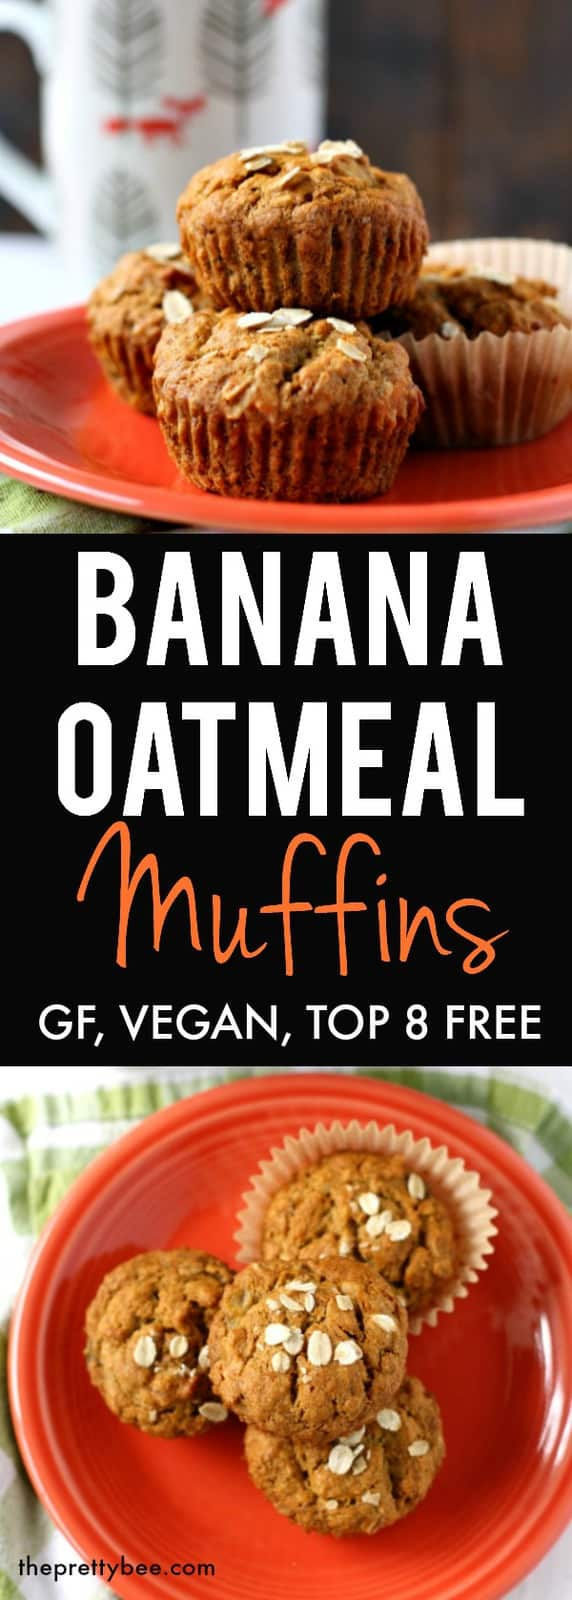 Easy gluten free and vegan banana muffin recipe. A simple, one bowl recipe that's delicious! #vegan #glutenfree #dairyfree #breakfast